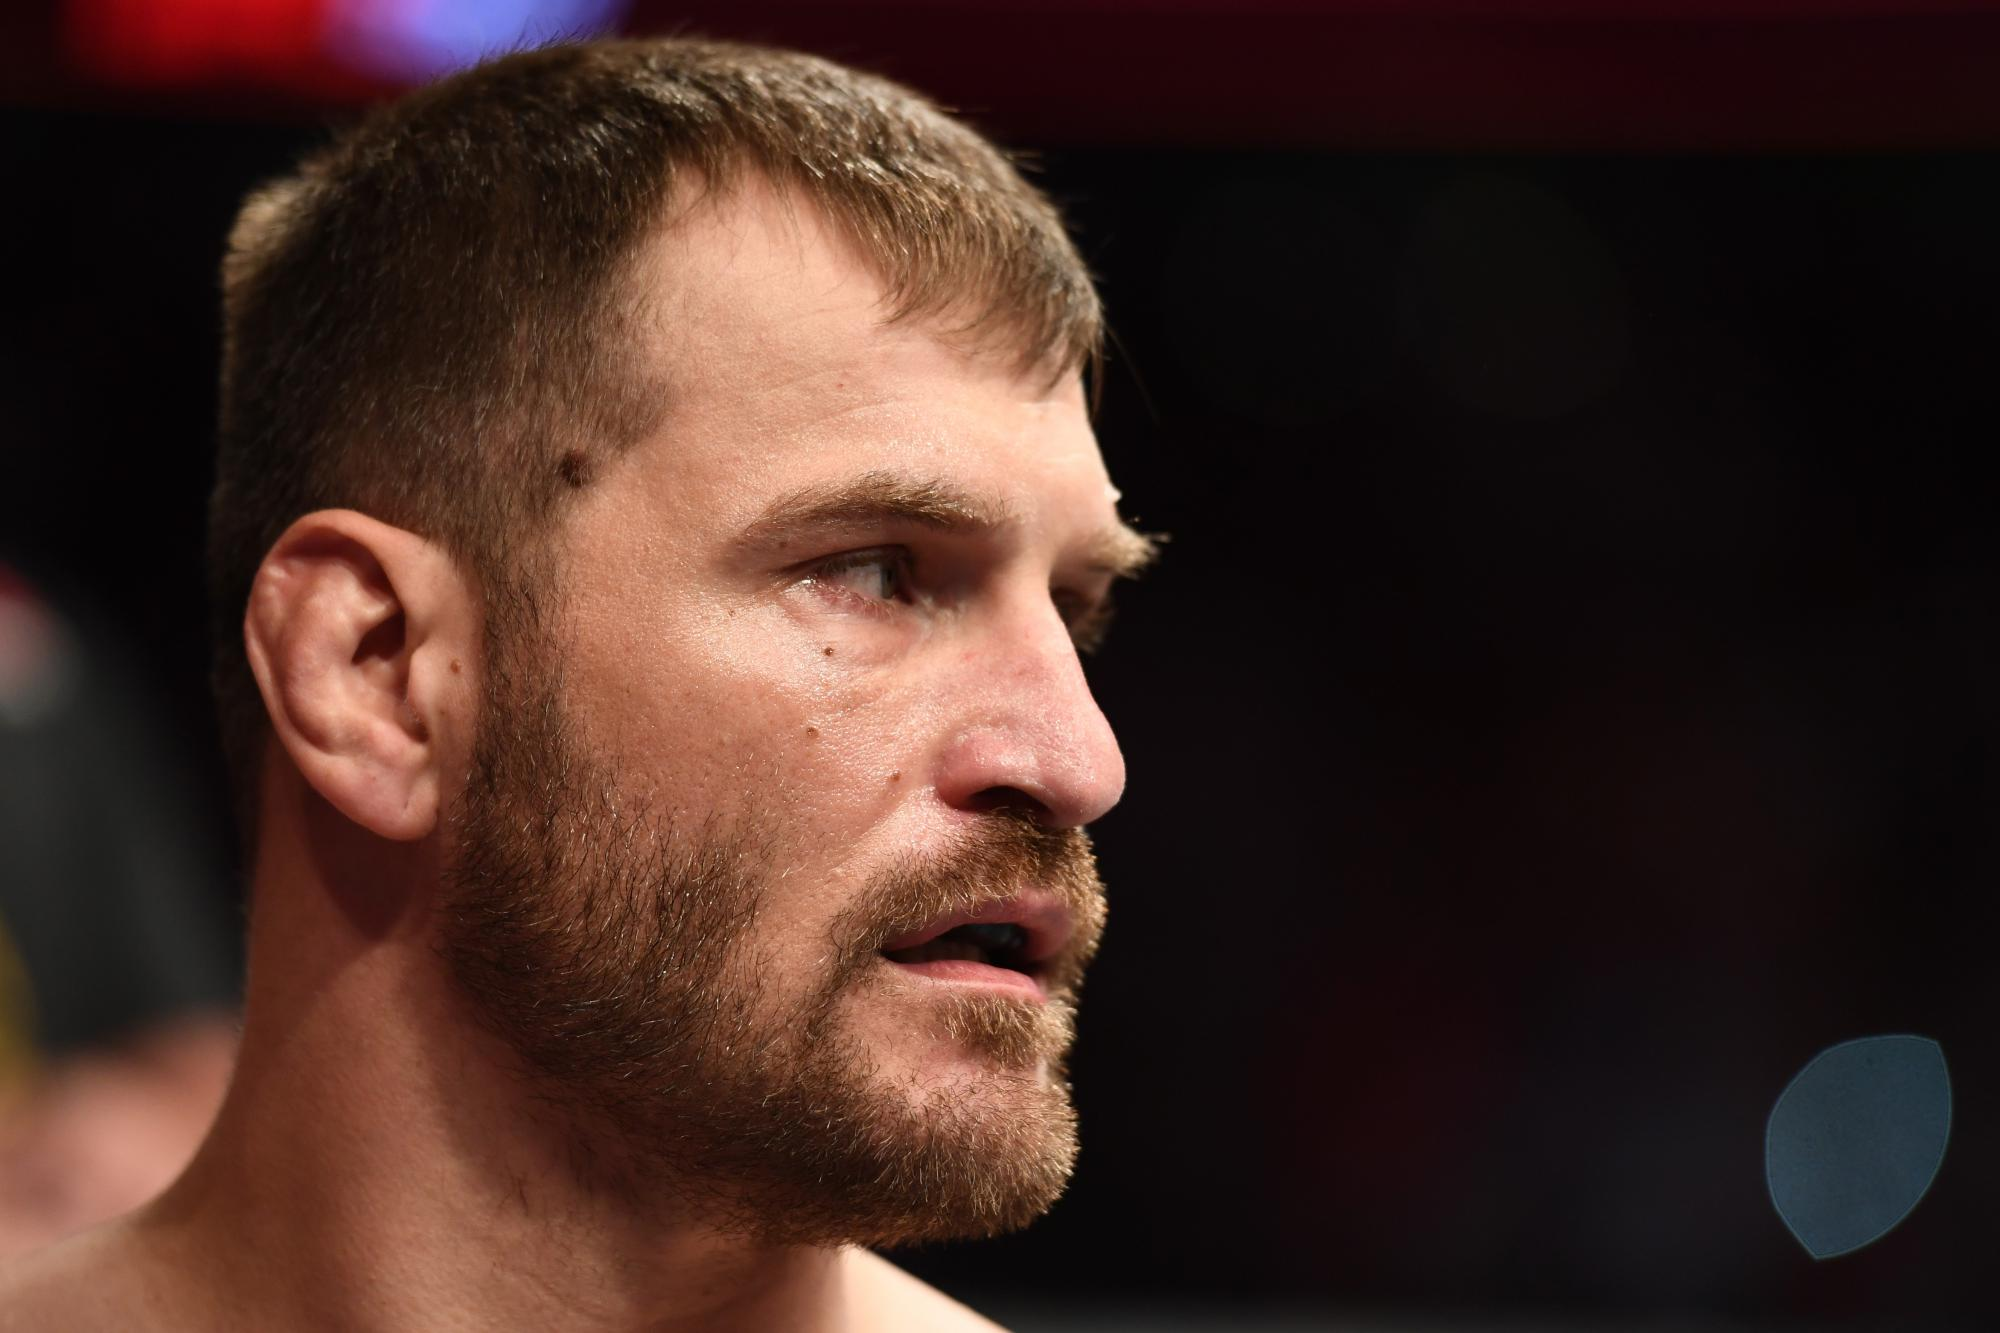 Stipe Miocic reacts to getting HW title rematch against DC - Miocic